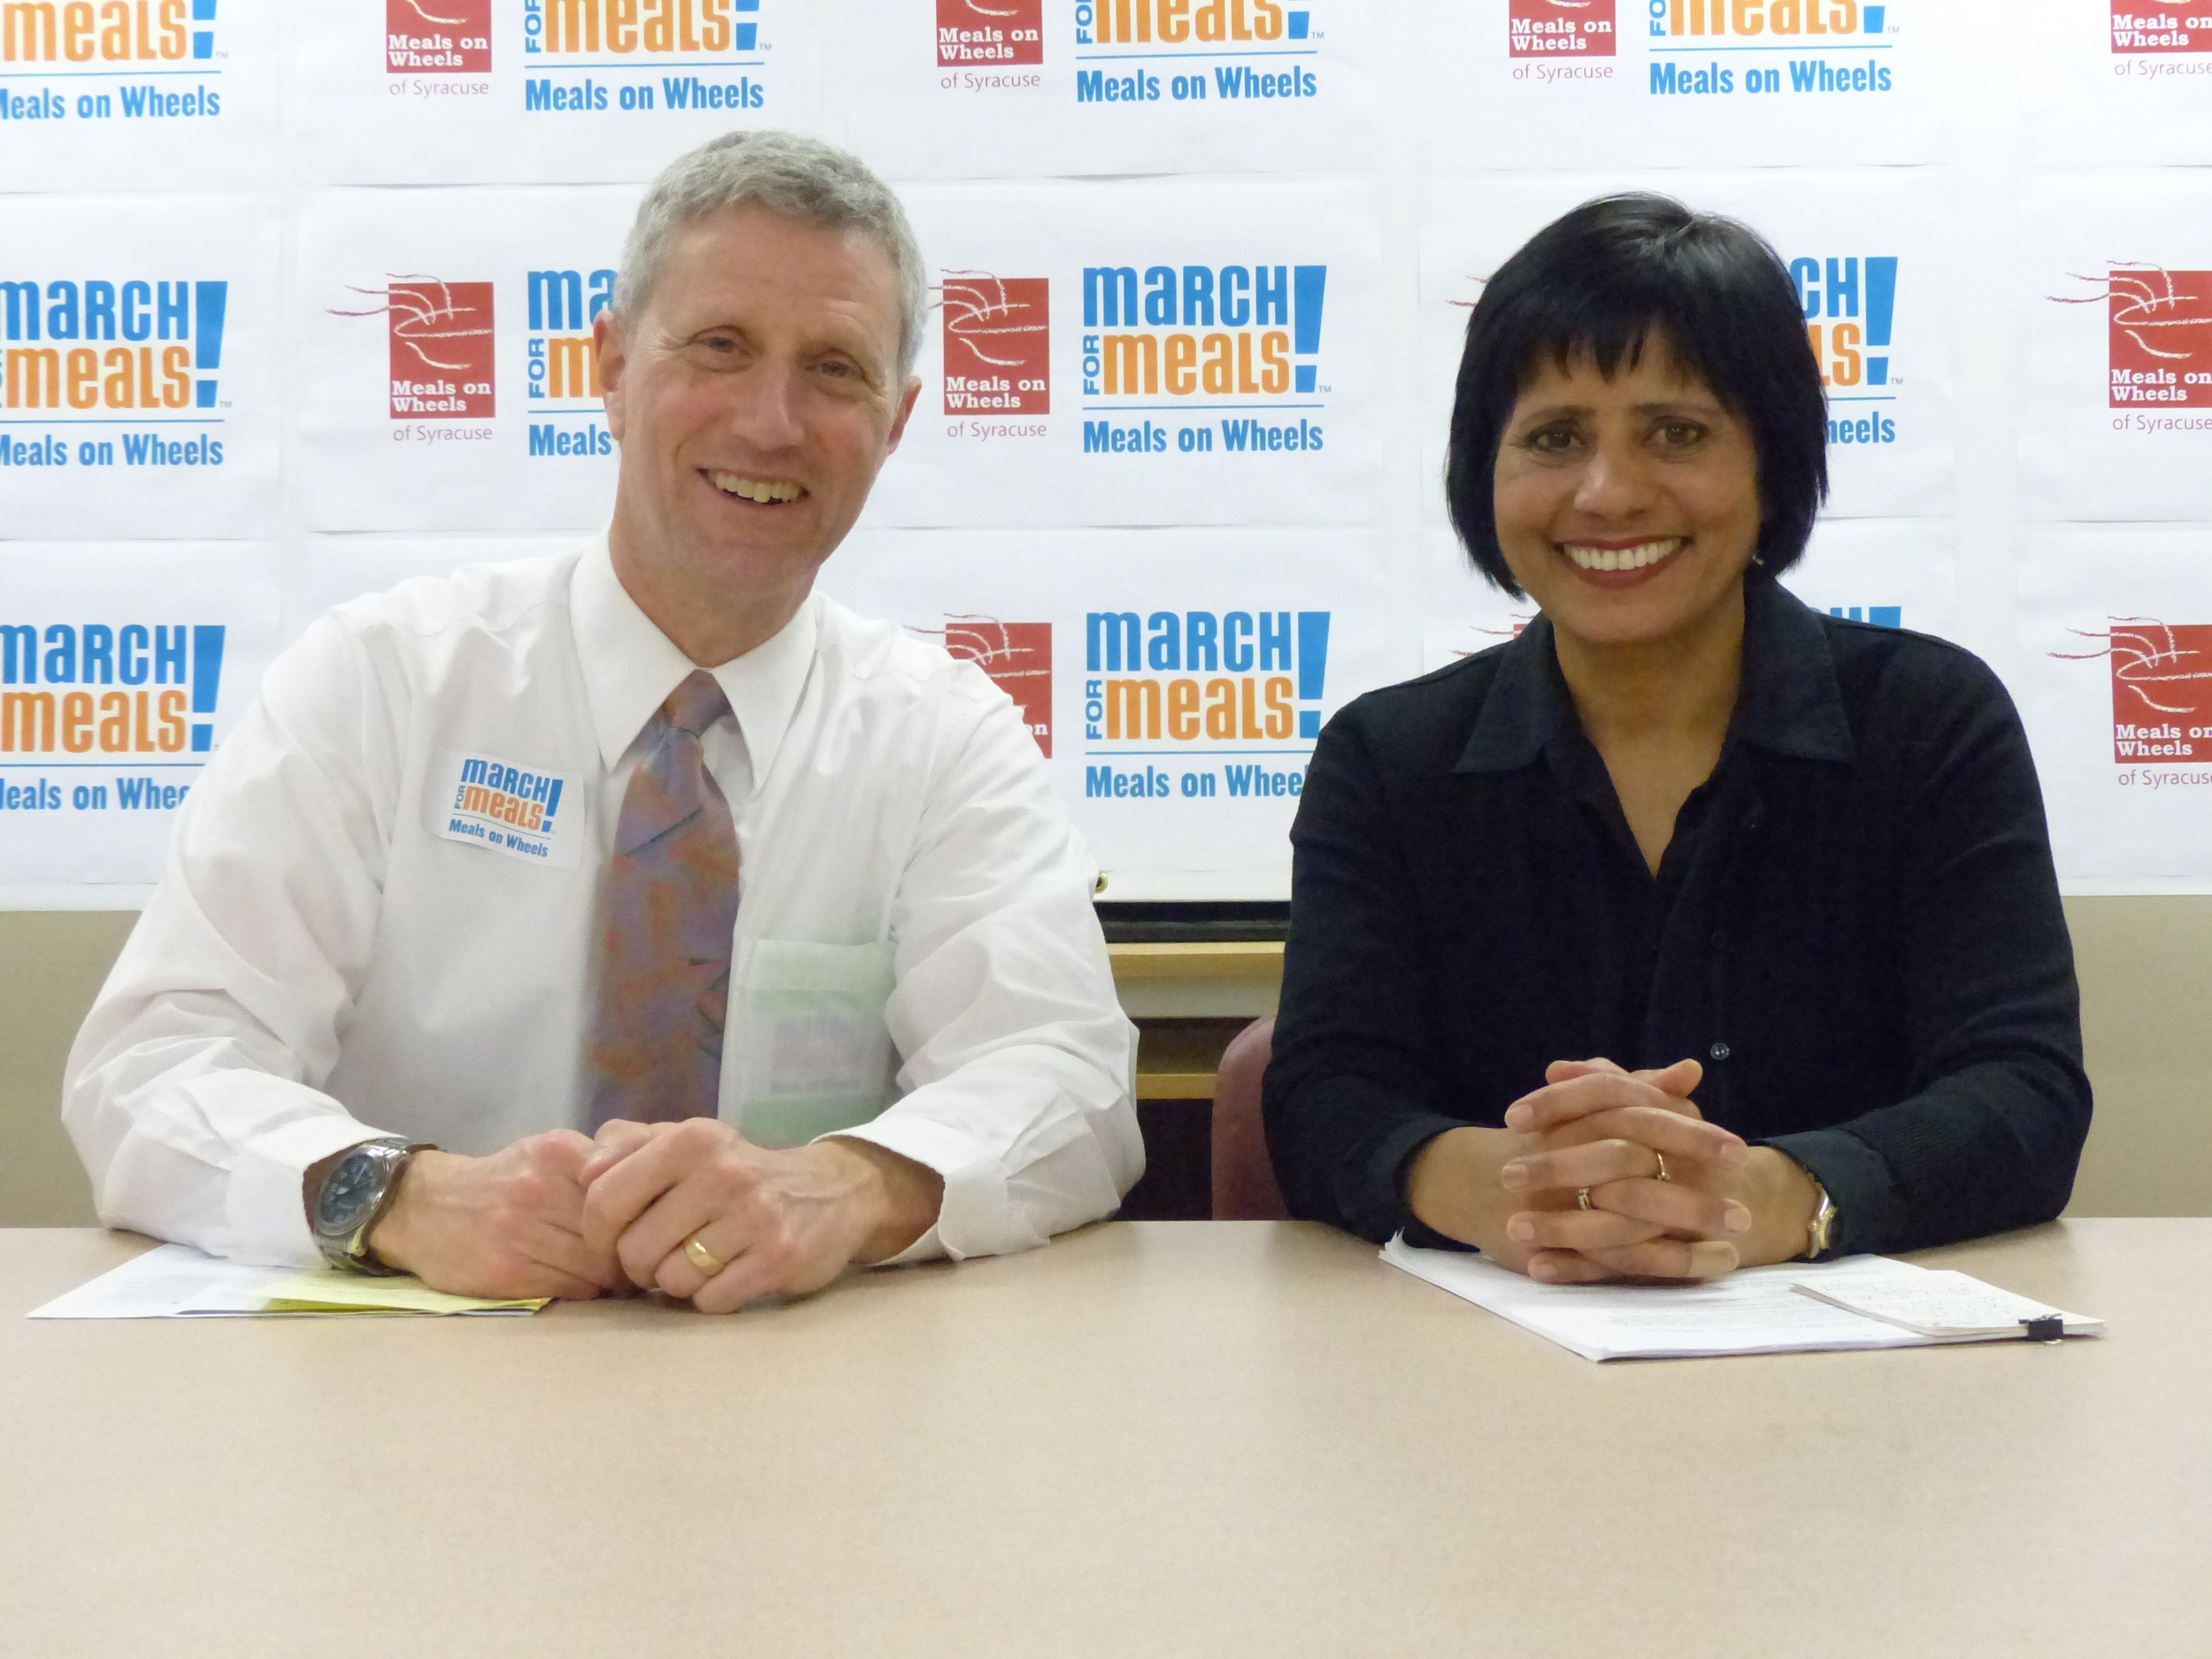 MASON KAUFMAN, EXECUTIVE DIRECTOR, MEALS ON WHEELS OF SYRACUSE AND DR. INDU GUPTA, MD, MPH, COMMISSIONER OF HEALTH, ONONDAGA COUNTY HEALTH DEPARTMENT